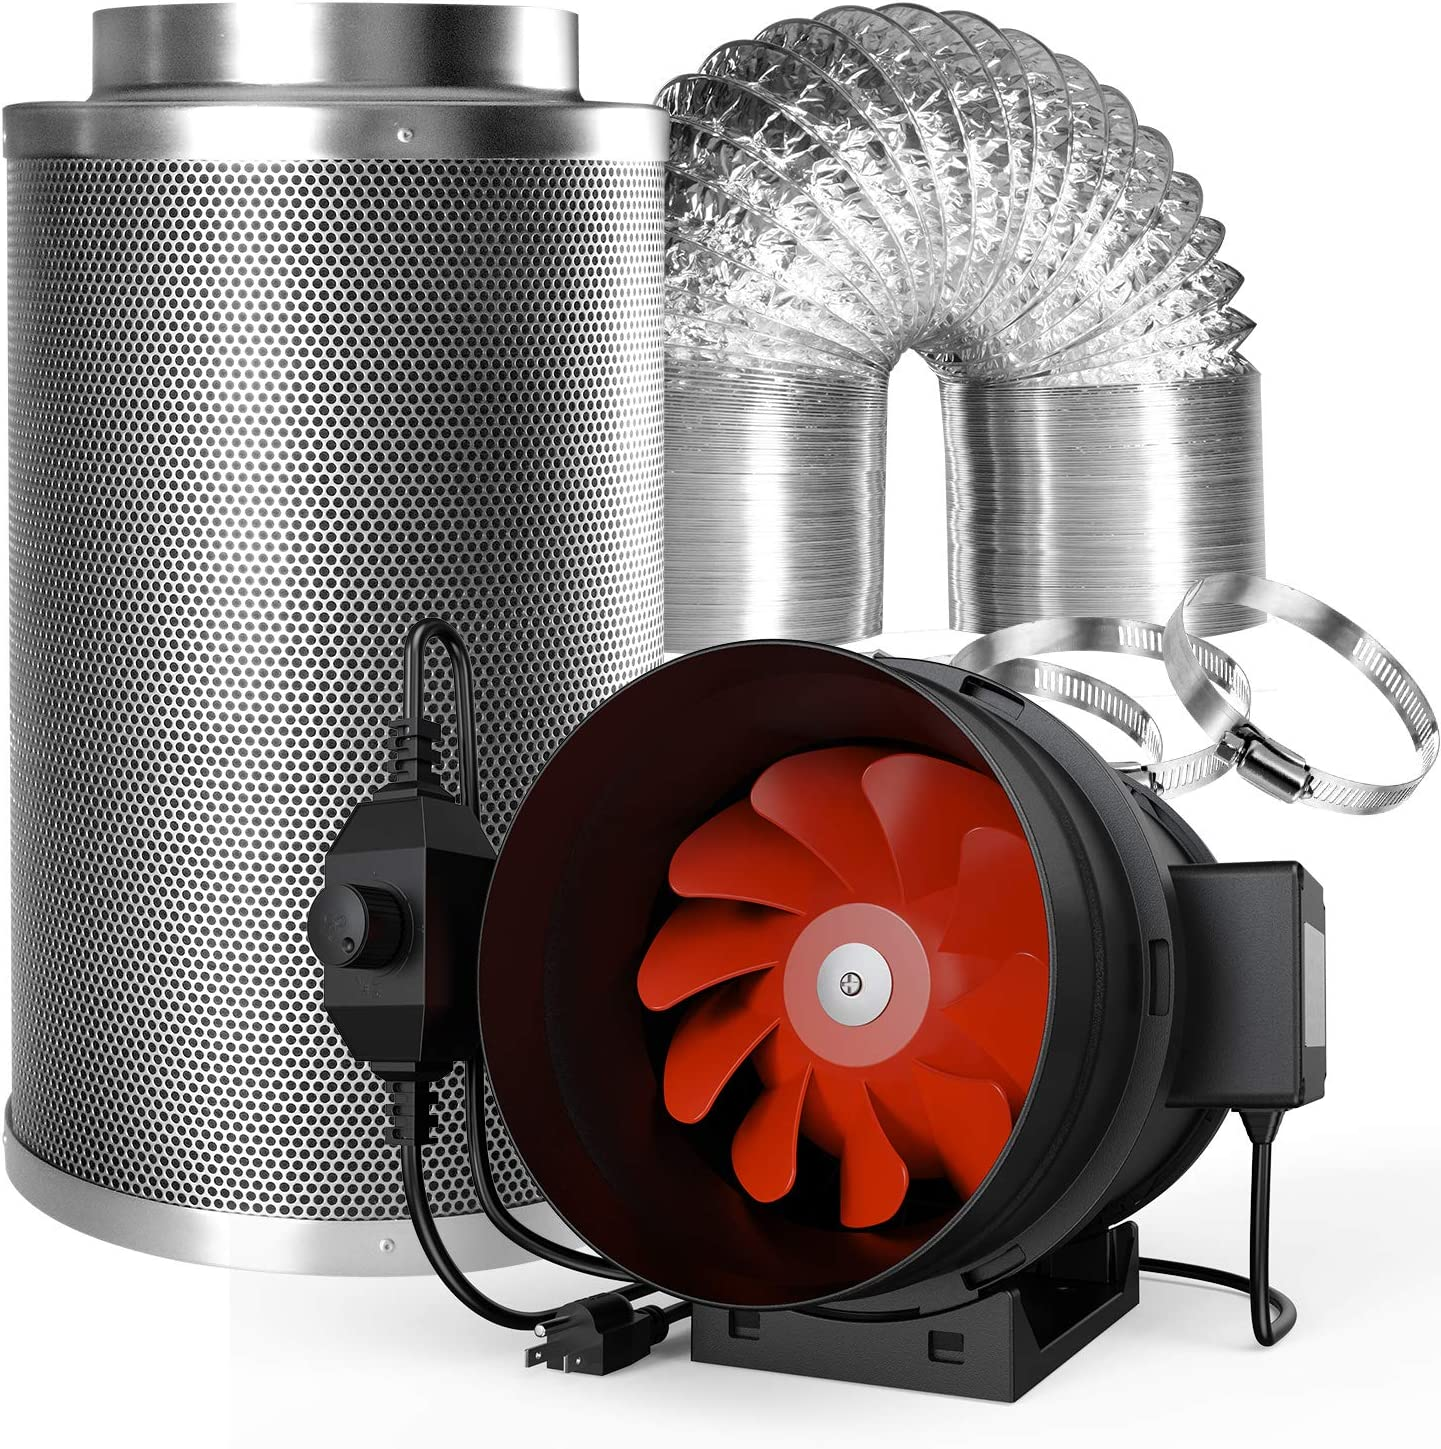 Spider Farmer Air Filtration Kit 4 Inch 200 CFM Inline Duct Fan with Speed Controller Carbon Filter 32 Feet Ducting Combo Set Ventilation System for Grow Tent Grow Room Indoor Plants